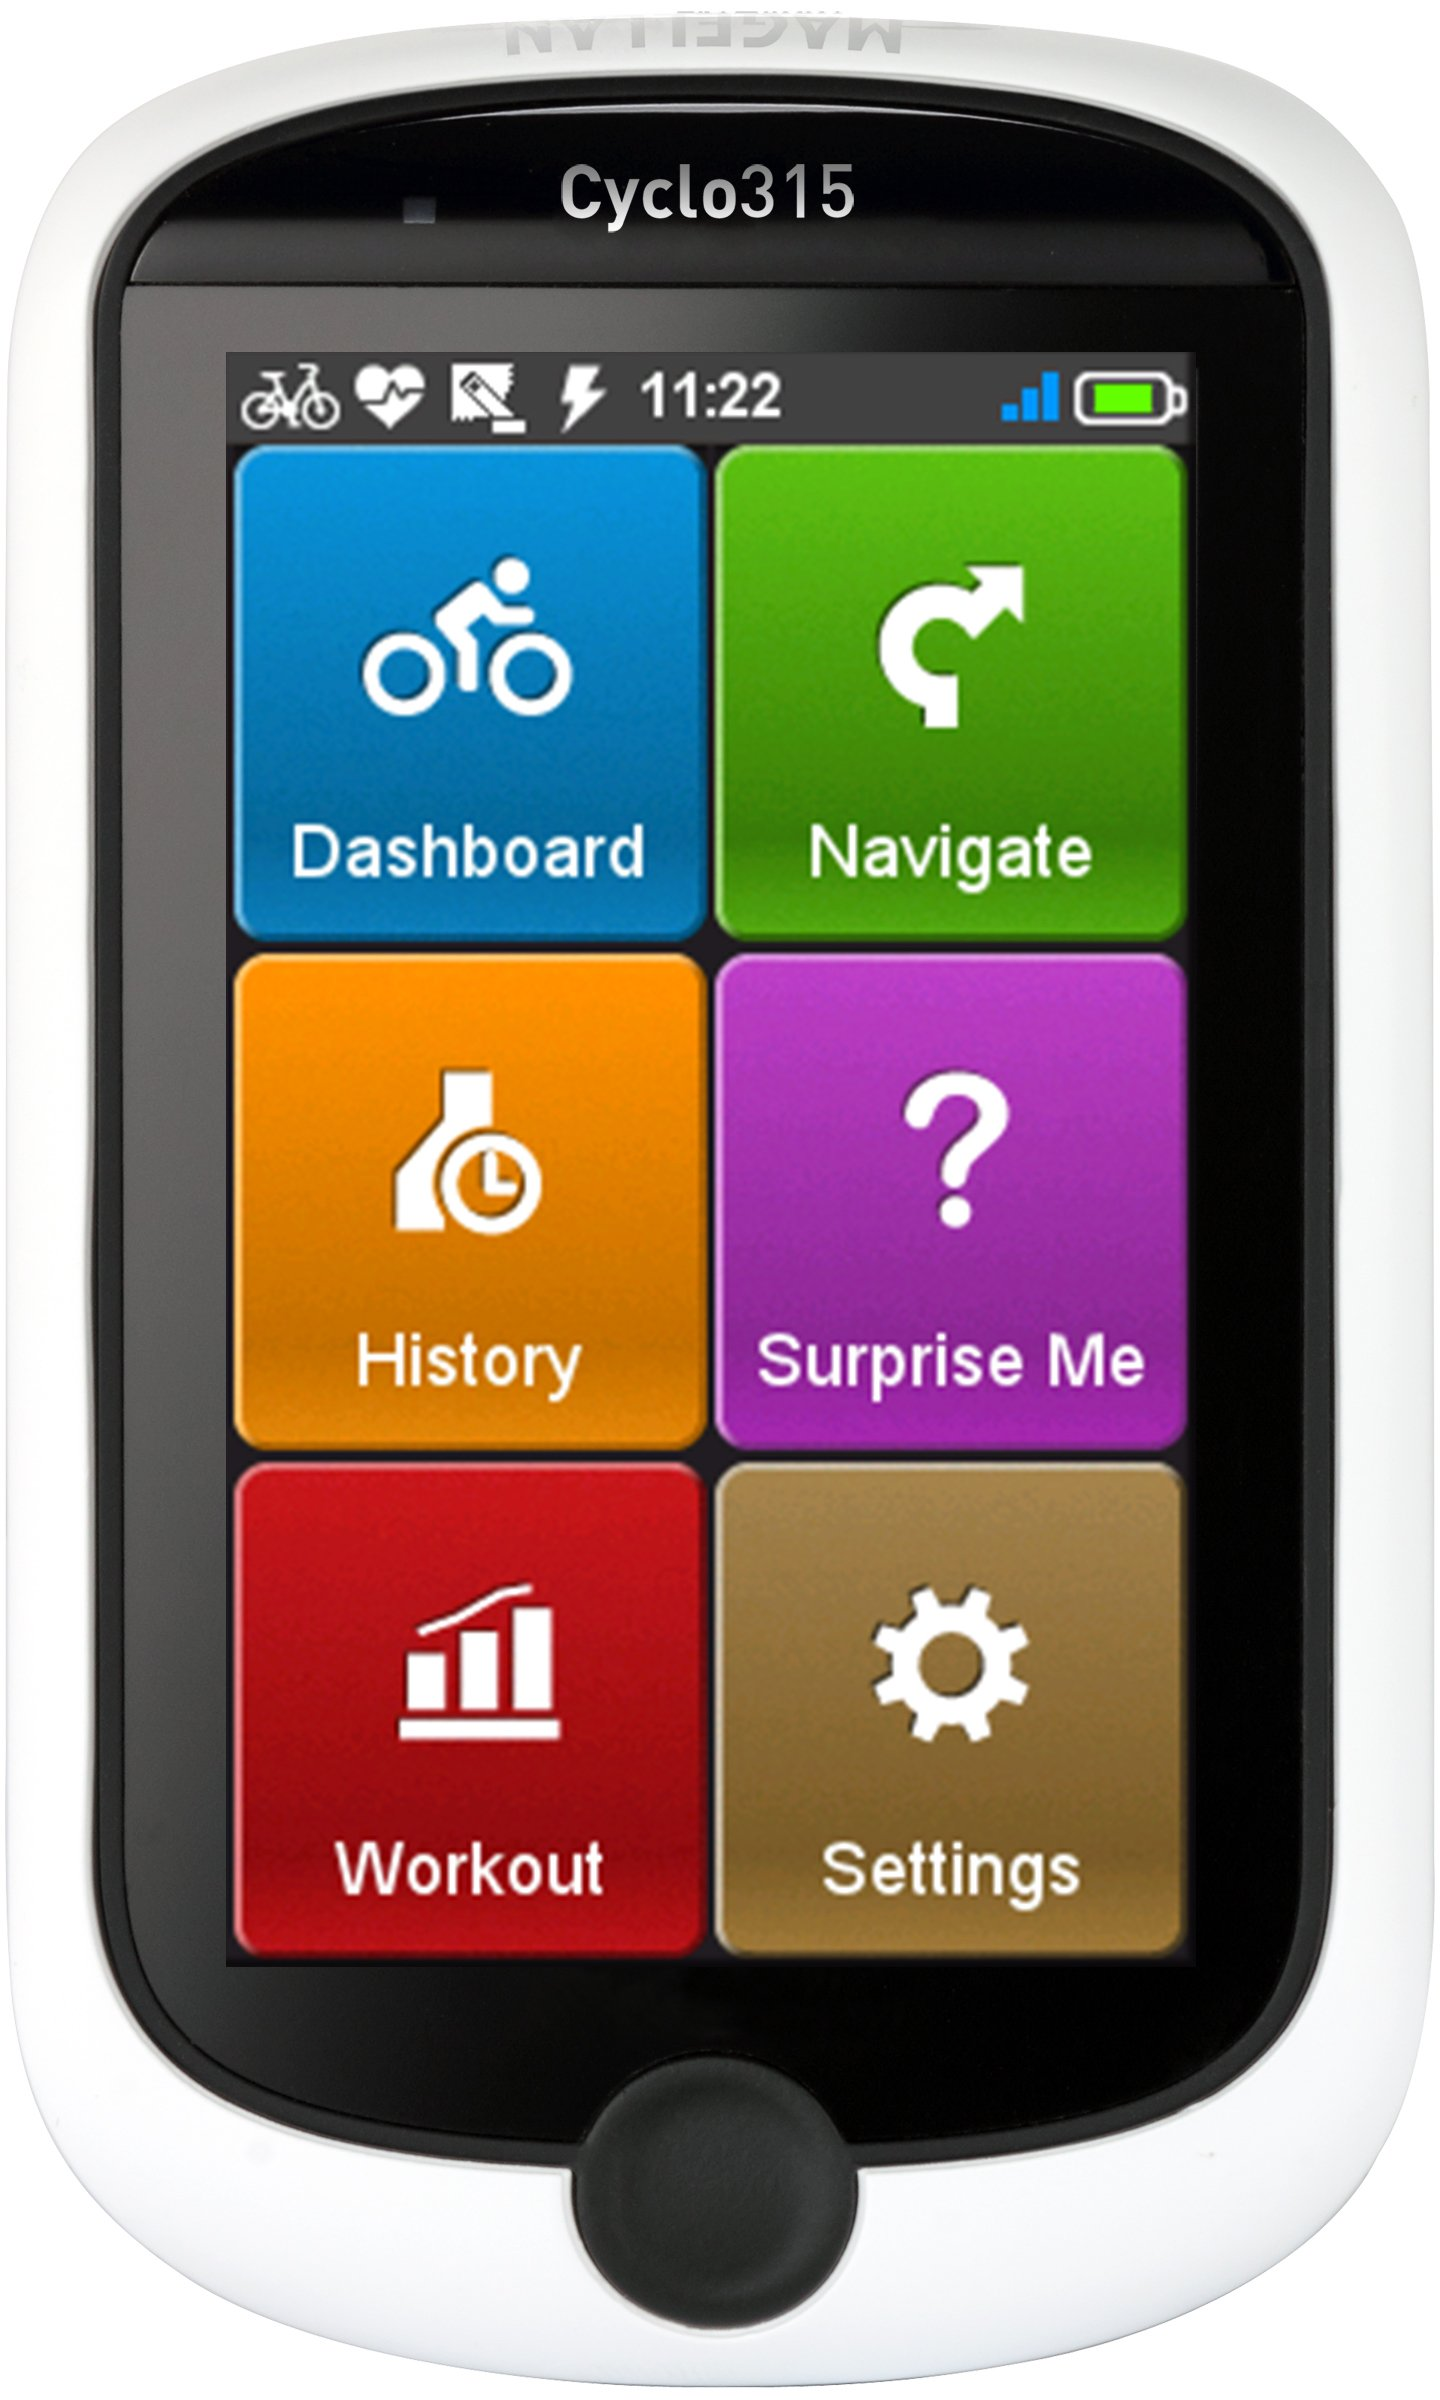 Magellan CY0315SGHNA Cyclo 315hc GPS Cycling Computer with Ant+ Heart Rate Monitor and Speed/Cadence Sensor